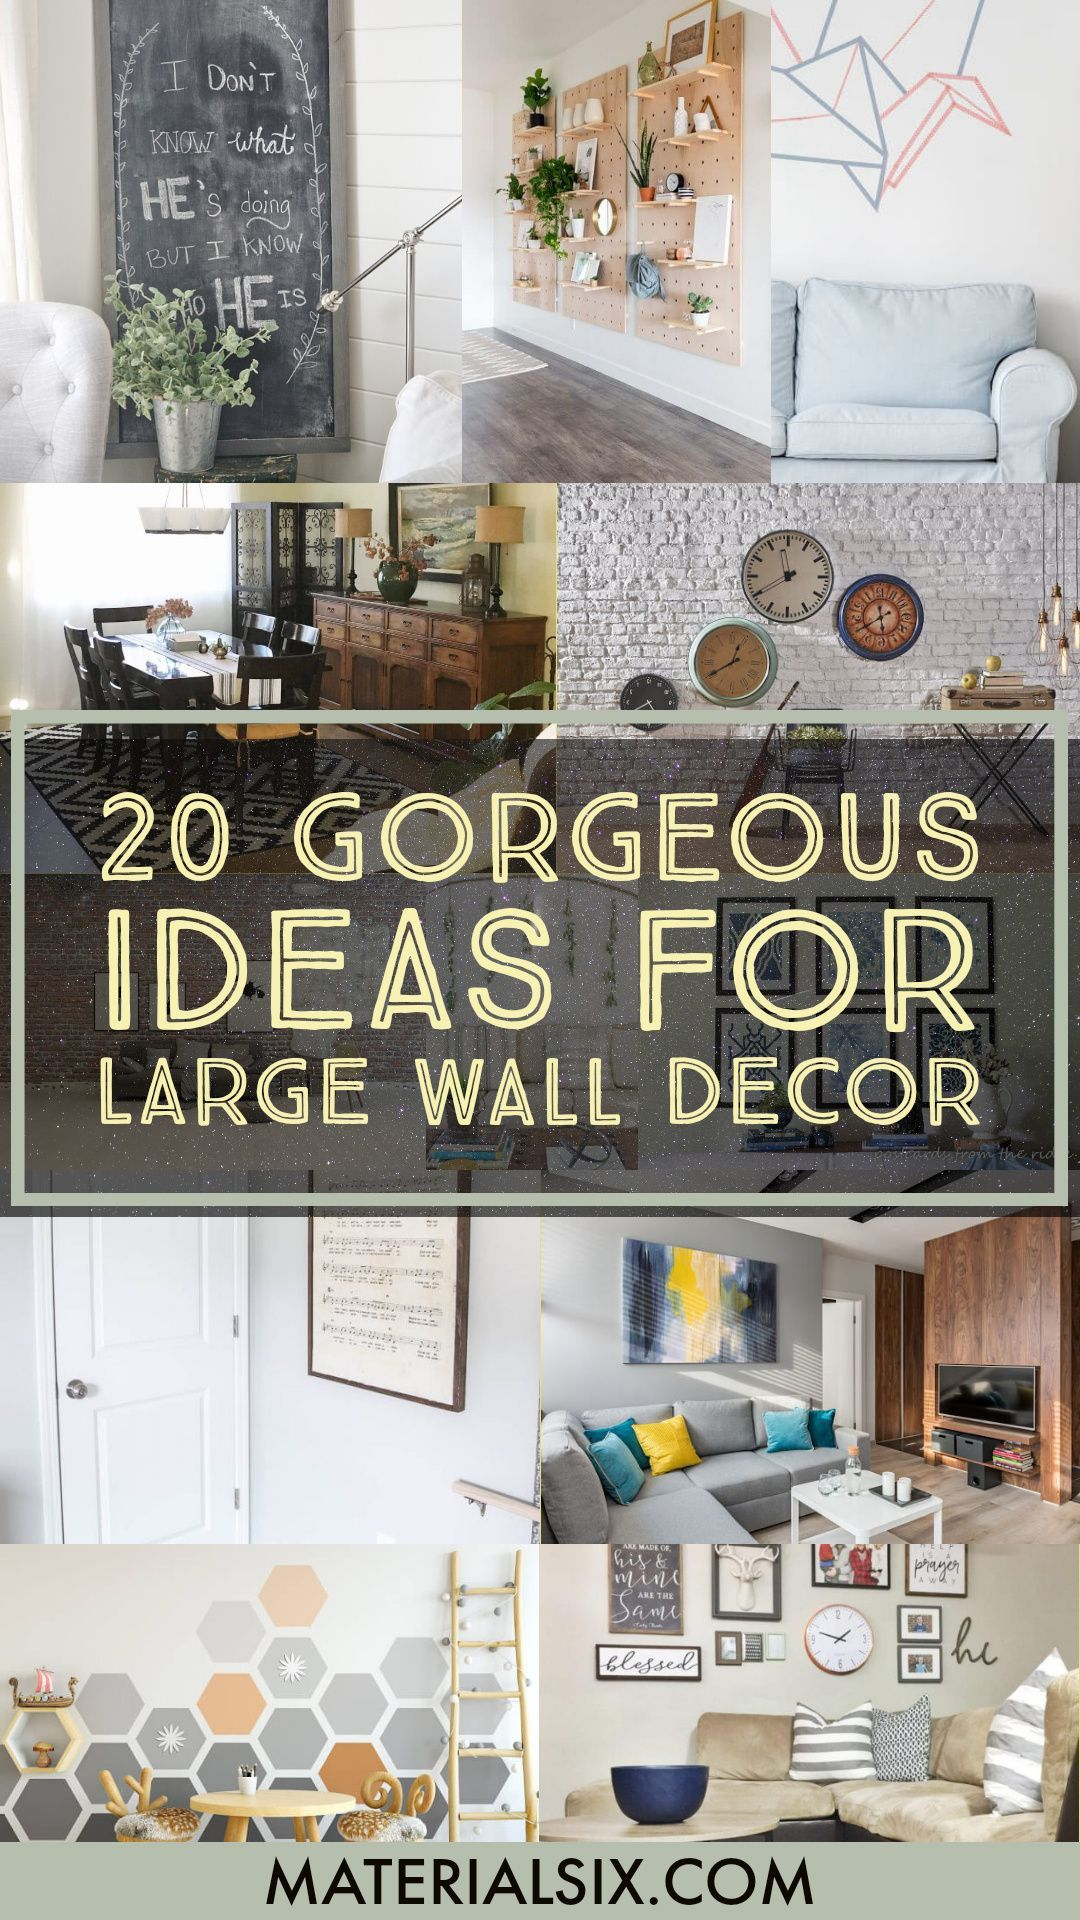 20 Gorgeous Ideas For Large Wall Decor Materialsix Com Large Wall Decor Unique Wall Decor Wall Decor